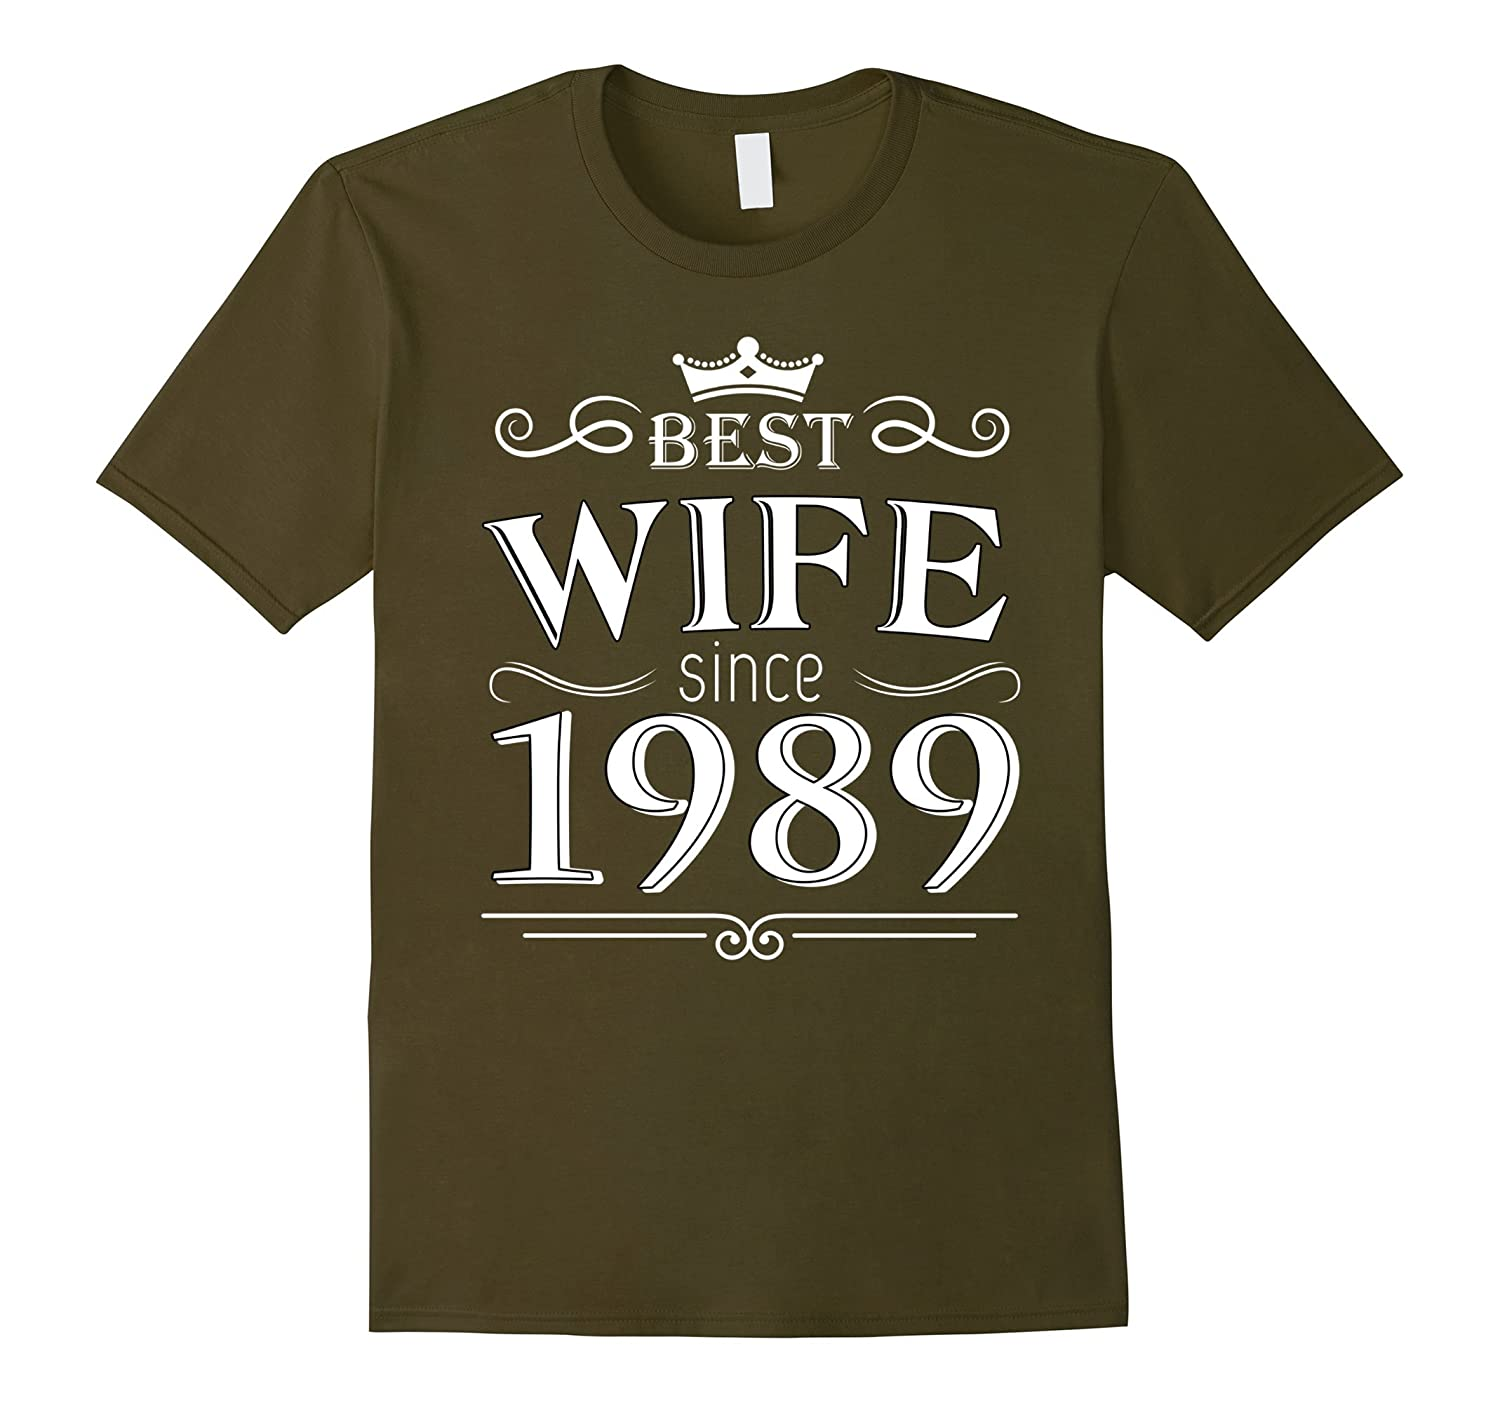 28th Wedding Anniversary Gift: Best Wife Since 1989 28 Years Wedding Anniversary 28th